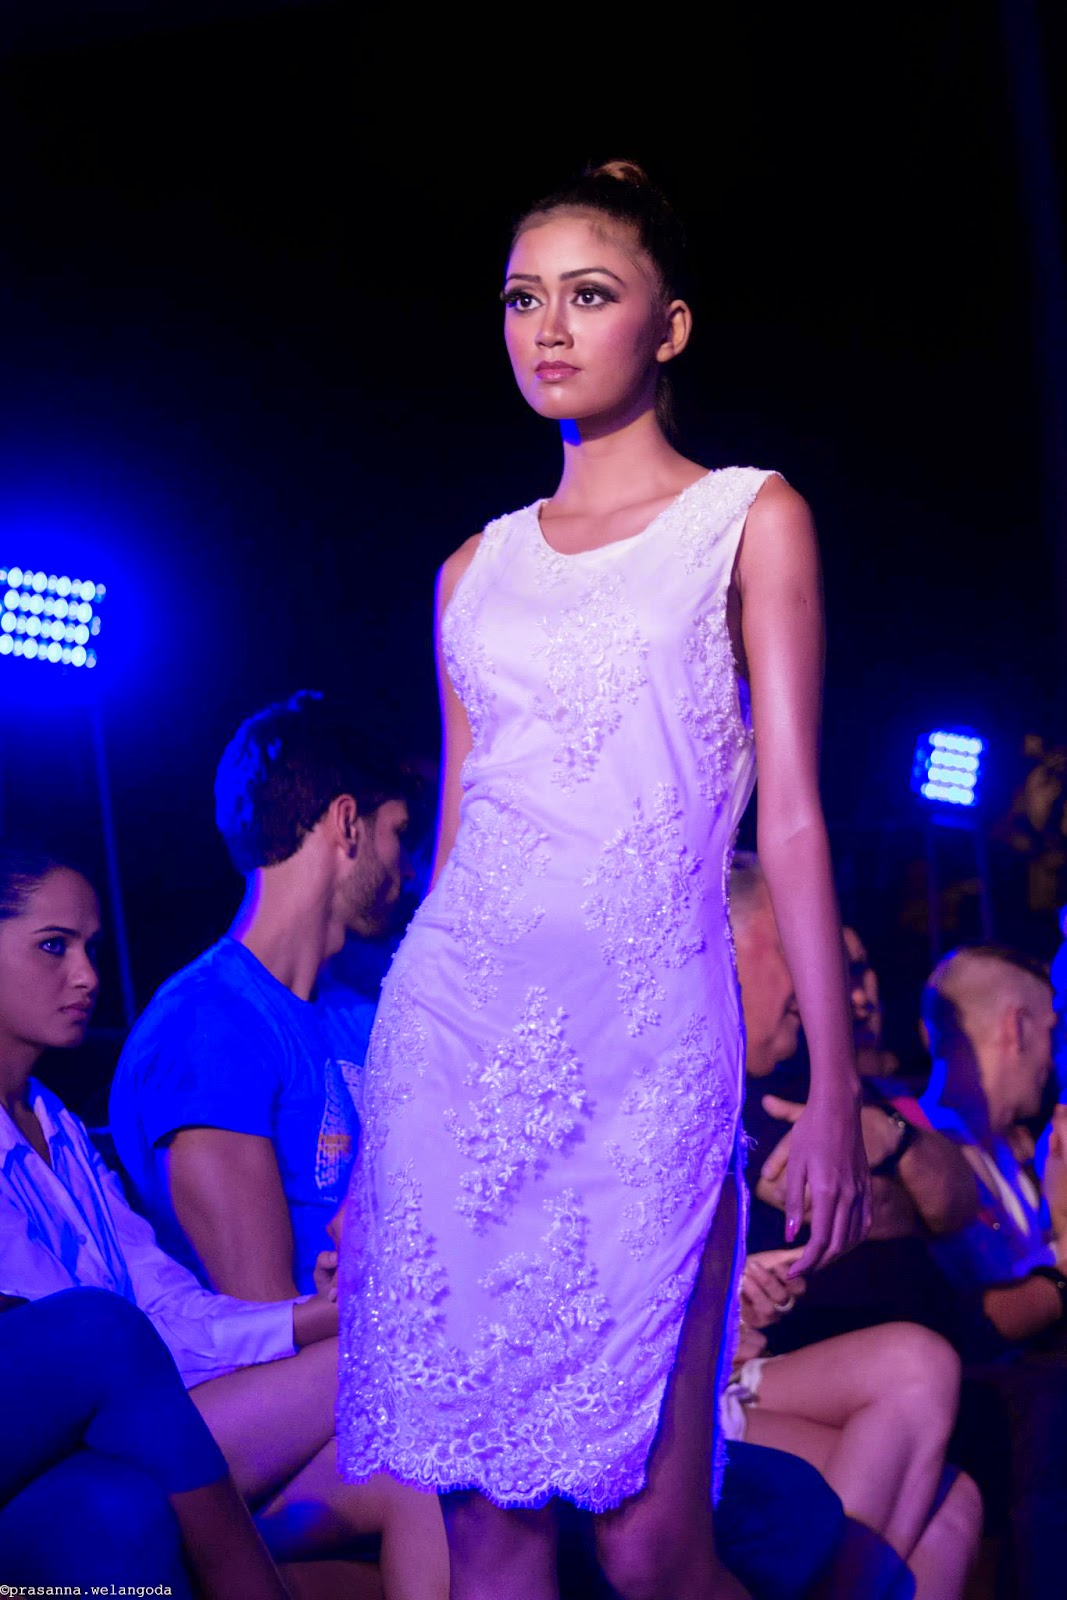 The Resort Show 2014 - Day 2 - Bright Sparks Show